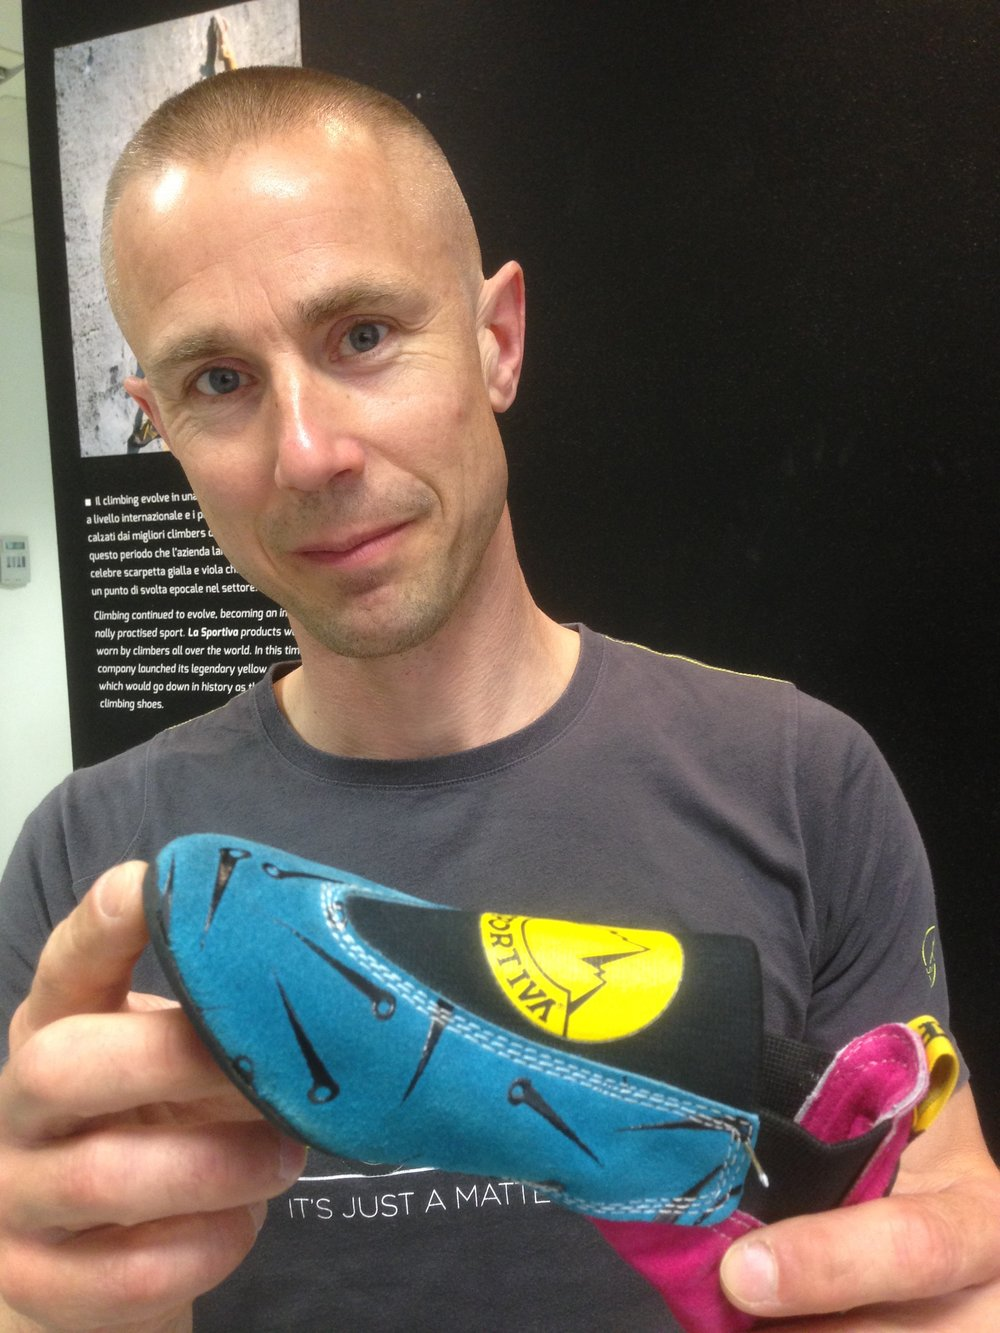 The birth of No-Edge Technology - La Sportiva's Ballerina slipper from the mid 1980s was the first stage of an evolutionary journey that took 3 decades.